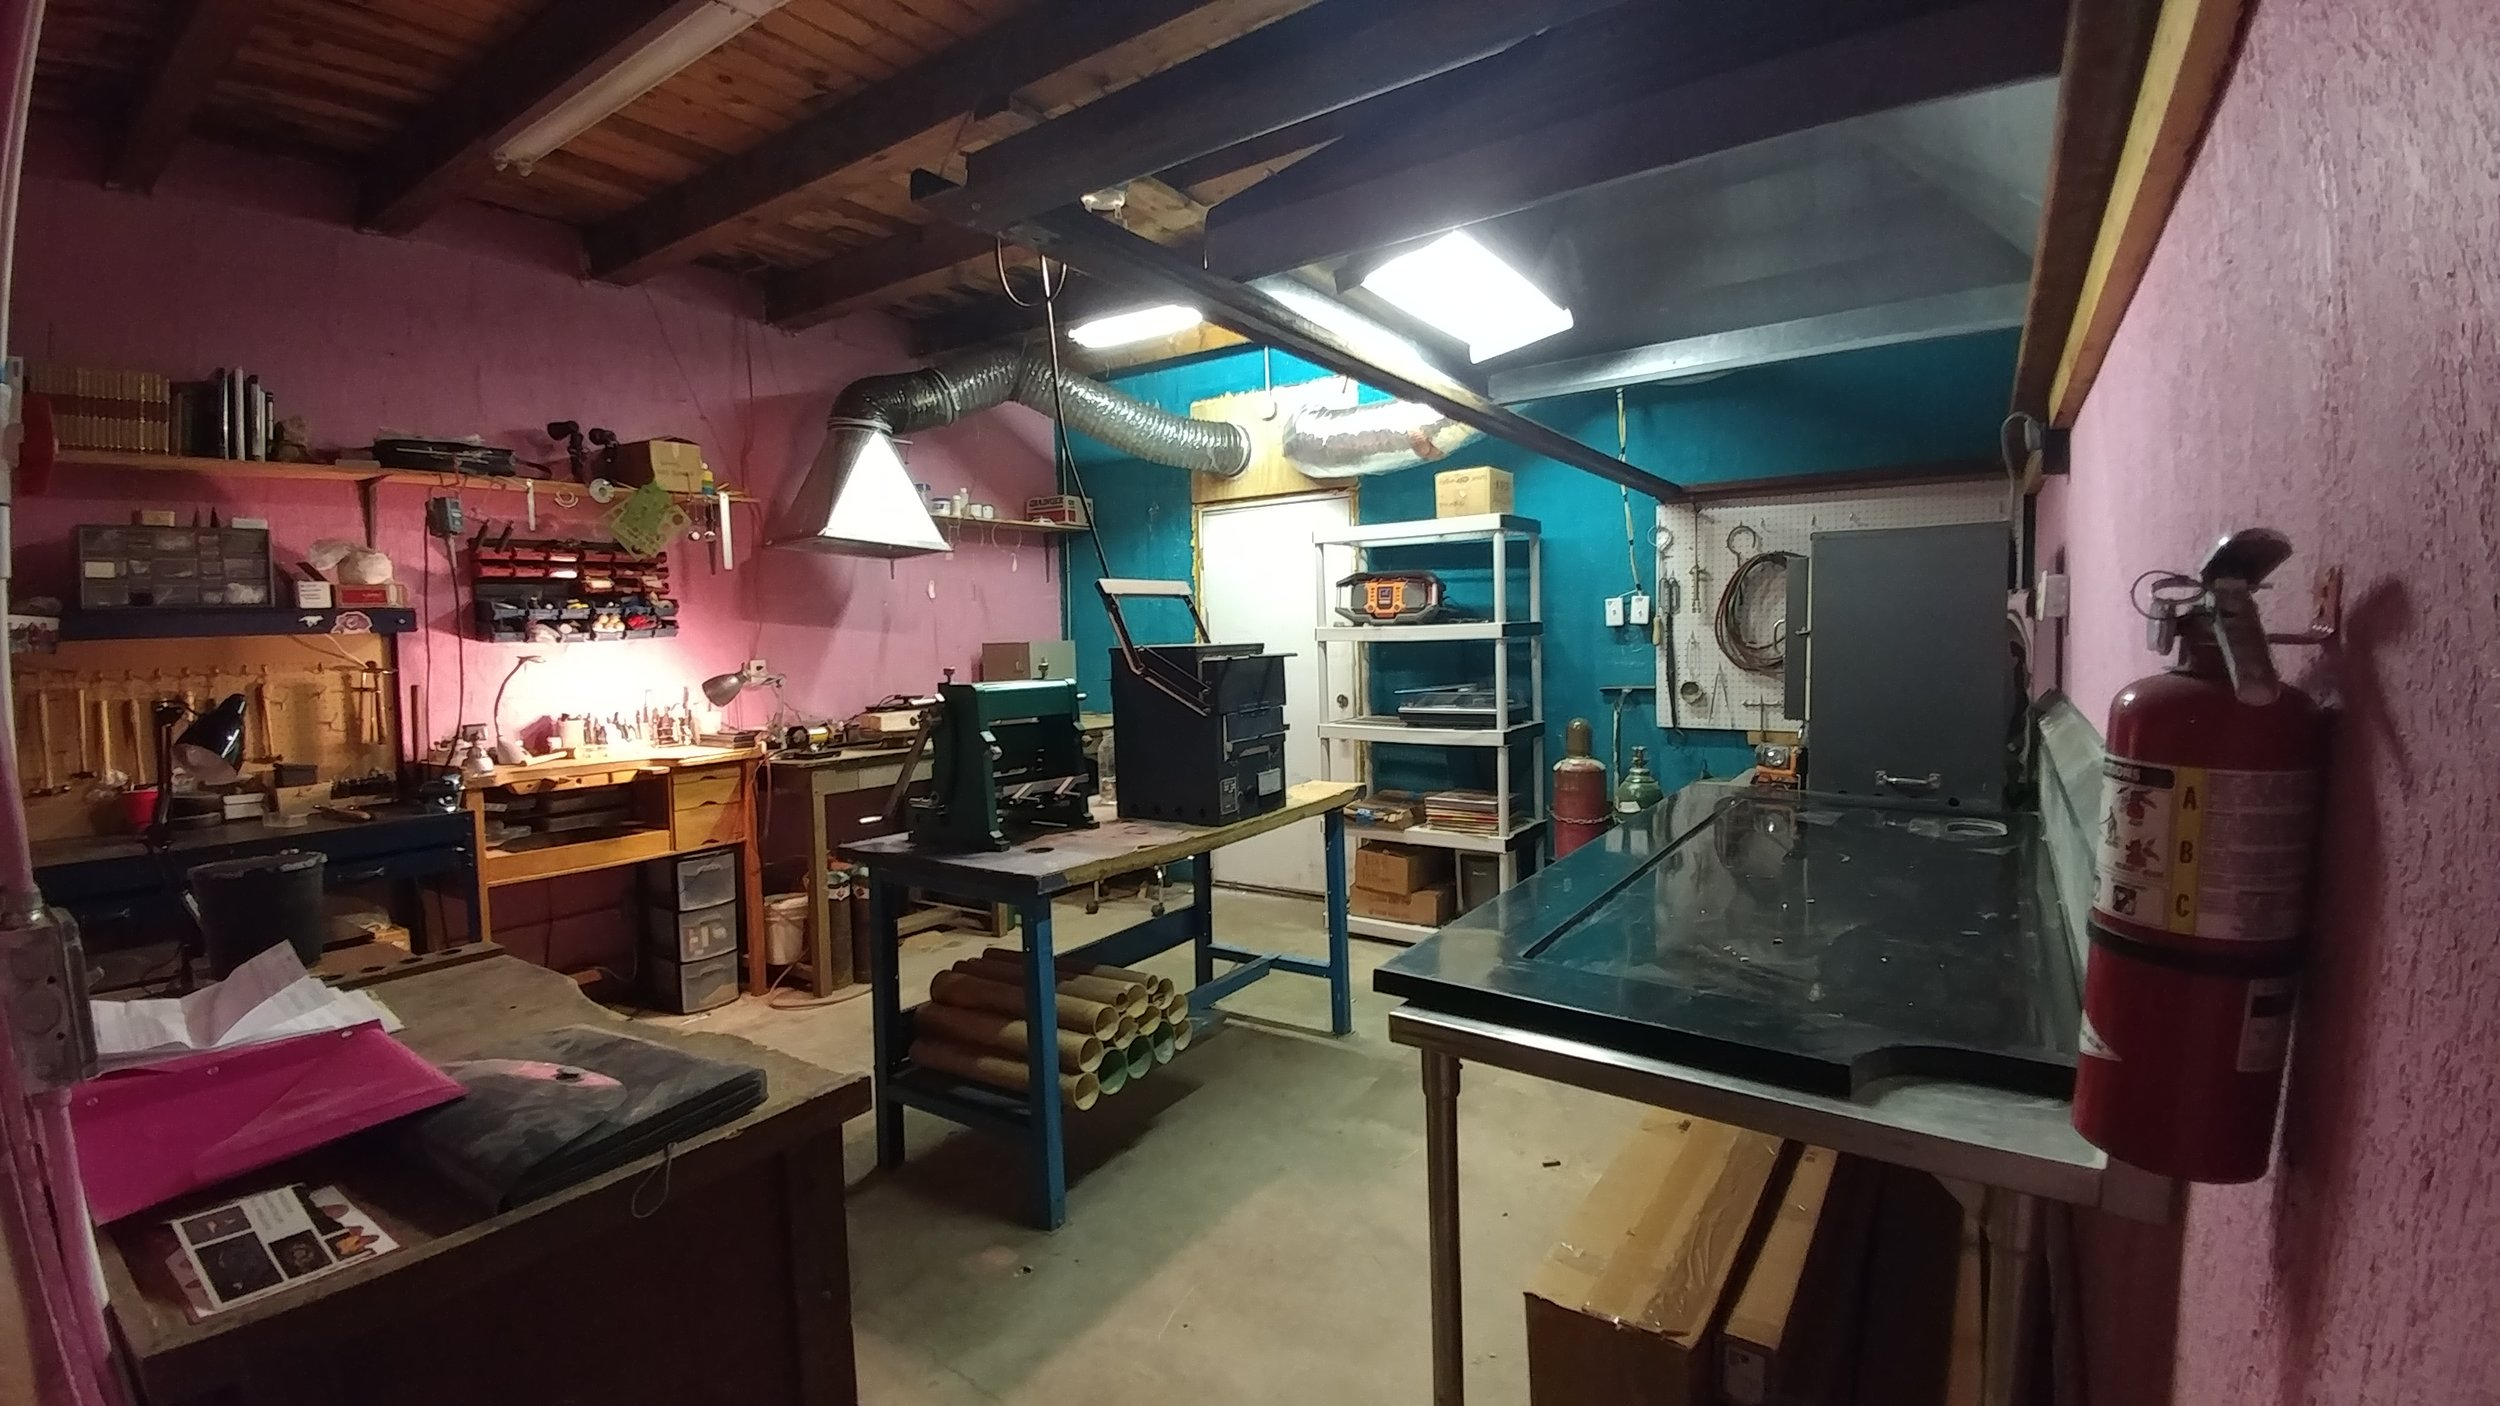 My Make Space - Located off Patagonia Highway near Nogales, Arizona nestled in the rugged hills of the Sonoran Desert, my studio is equipped with a lifetime's collection of machines and tools dedicated to lapidary, metalsmithing, and lampworking.